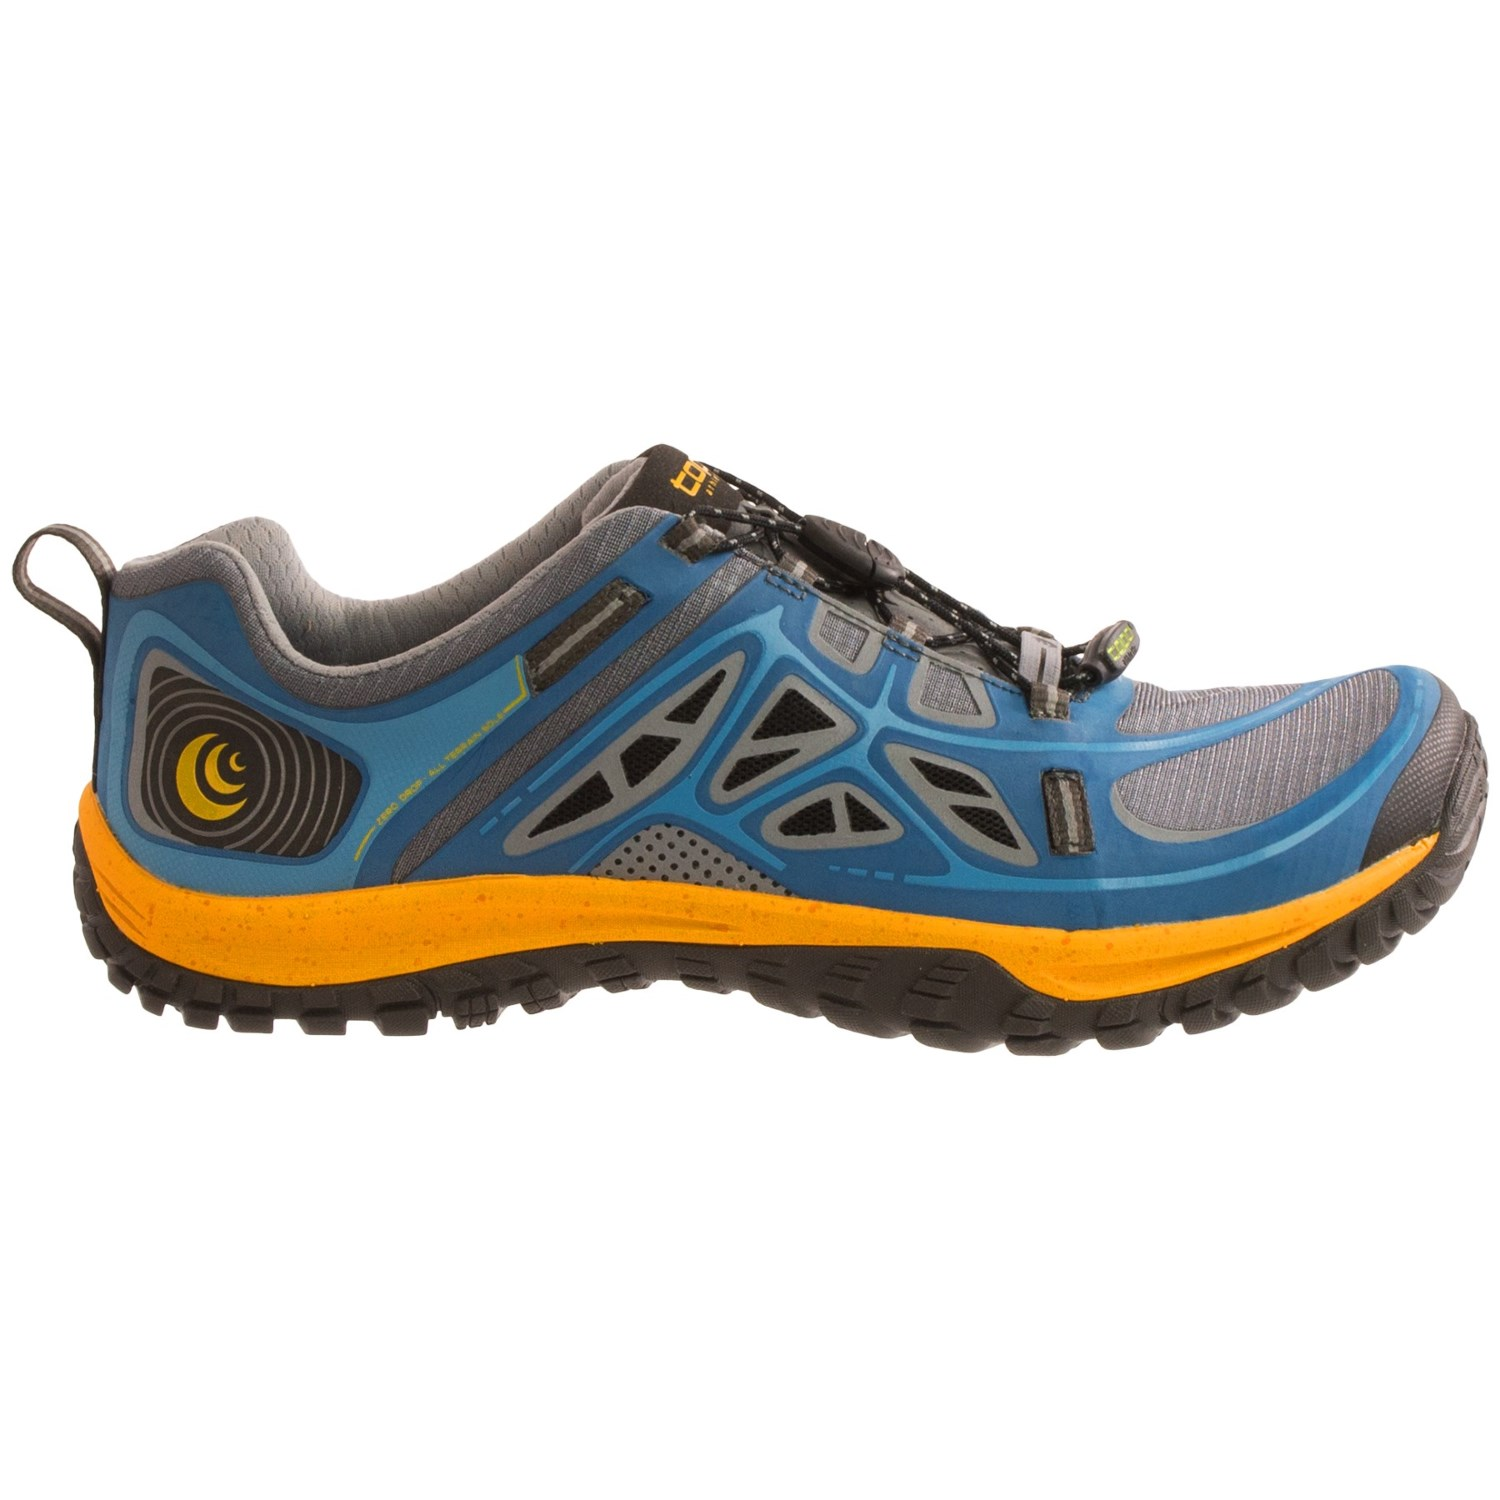 Keen Trail Running Shoes Review